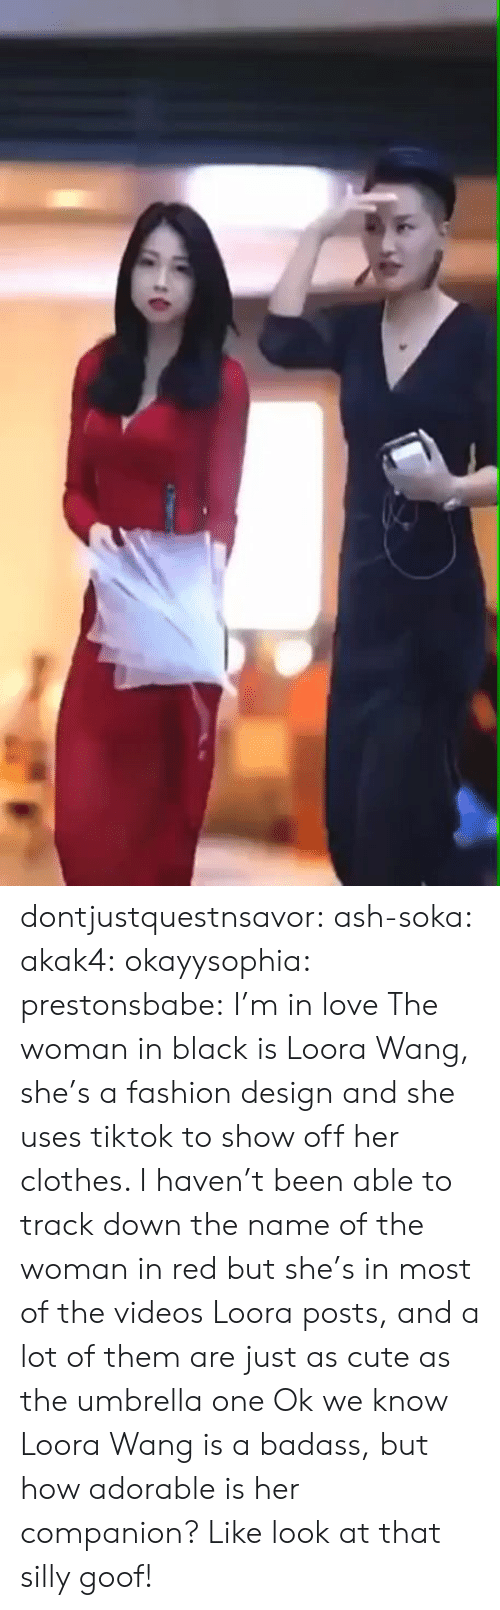 Im In Love: dontjustquestnsavor:  ash-soka:   akak4:   okayysophia:   prestonsbabe:     I'm in love    The woman in black is Loora Wang, she's a fashion design and she uses tiktok to show off her clothes. I haven't been able to track down the name of the woman in red but she's in most of the videos Loora posts, and a lot of them are just as cute as the umbrella one   Ok we know Loora Wang is a badass, but how adorable is her companion? Like look at that silly goof!